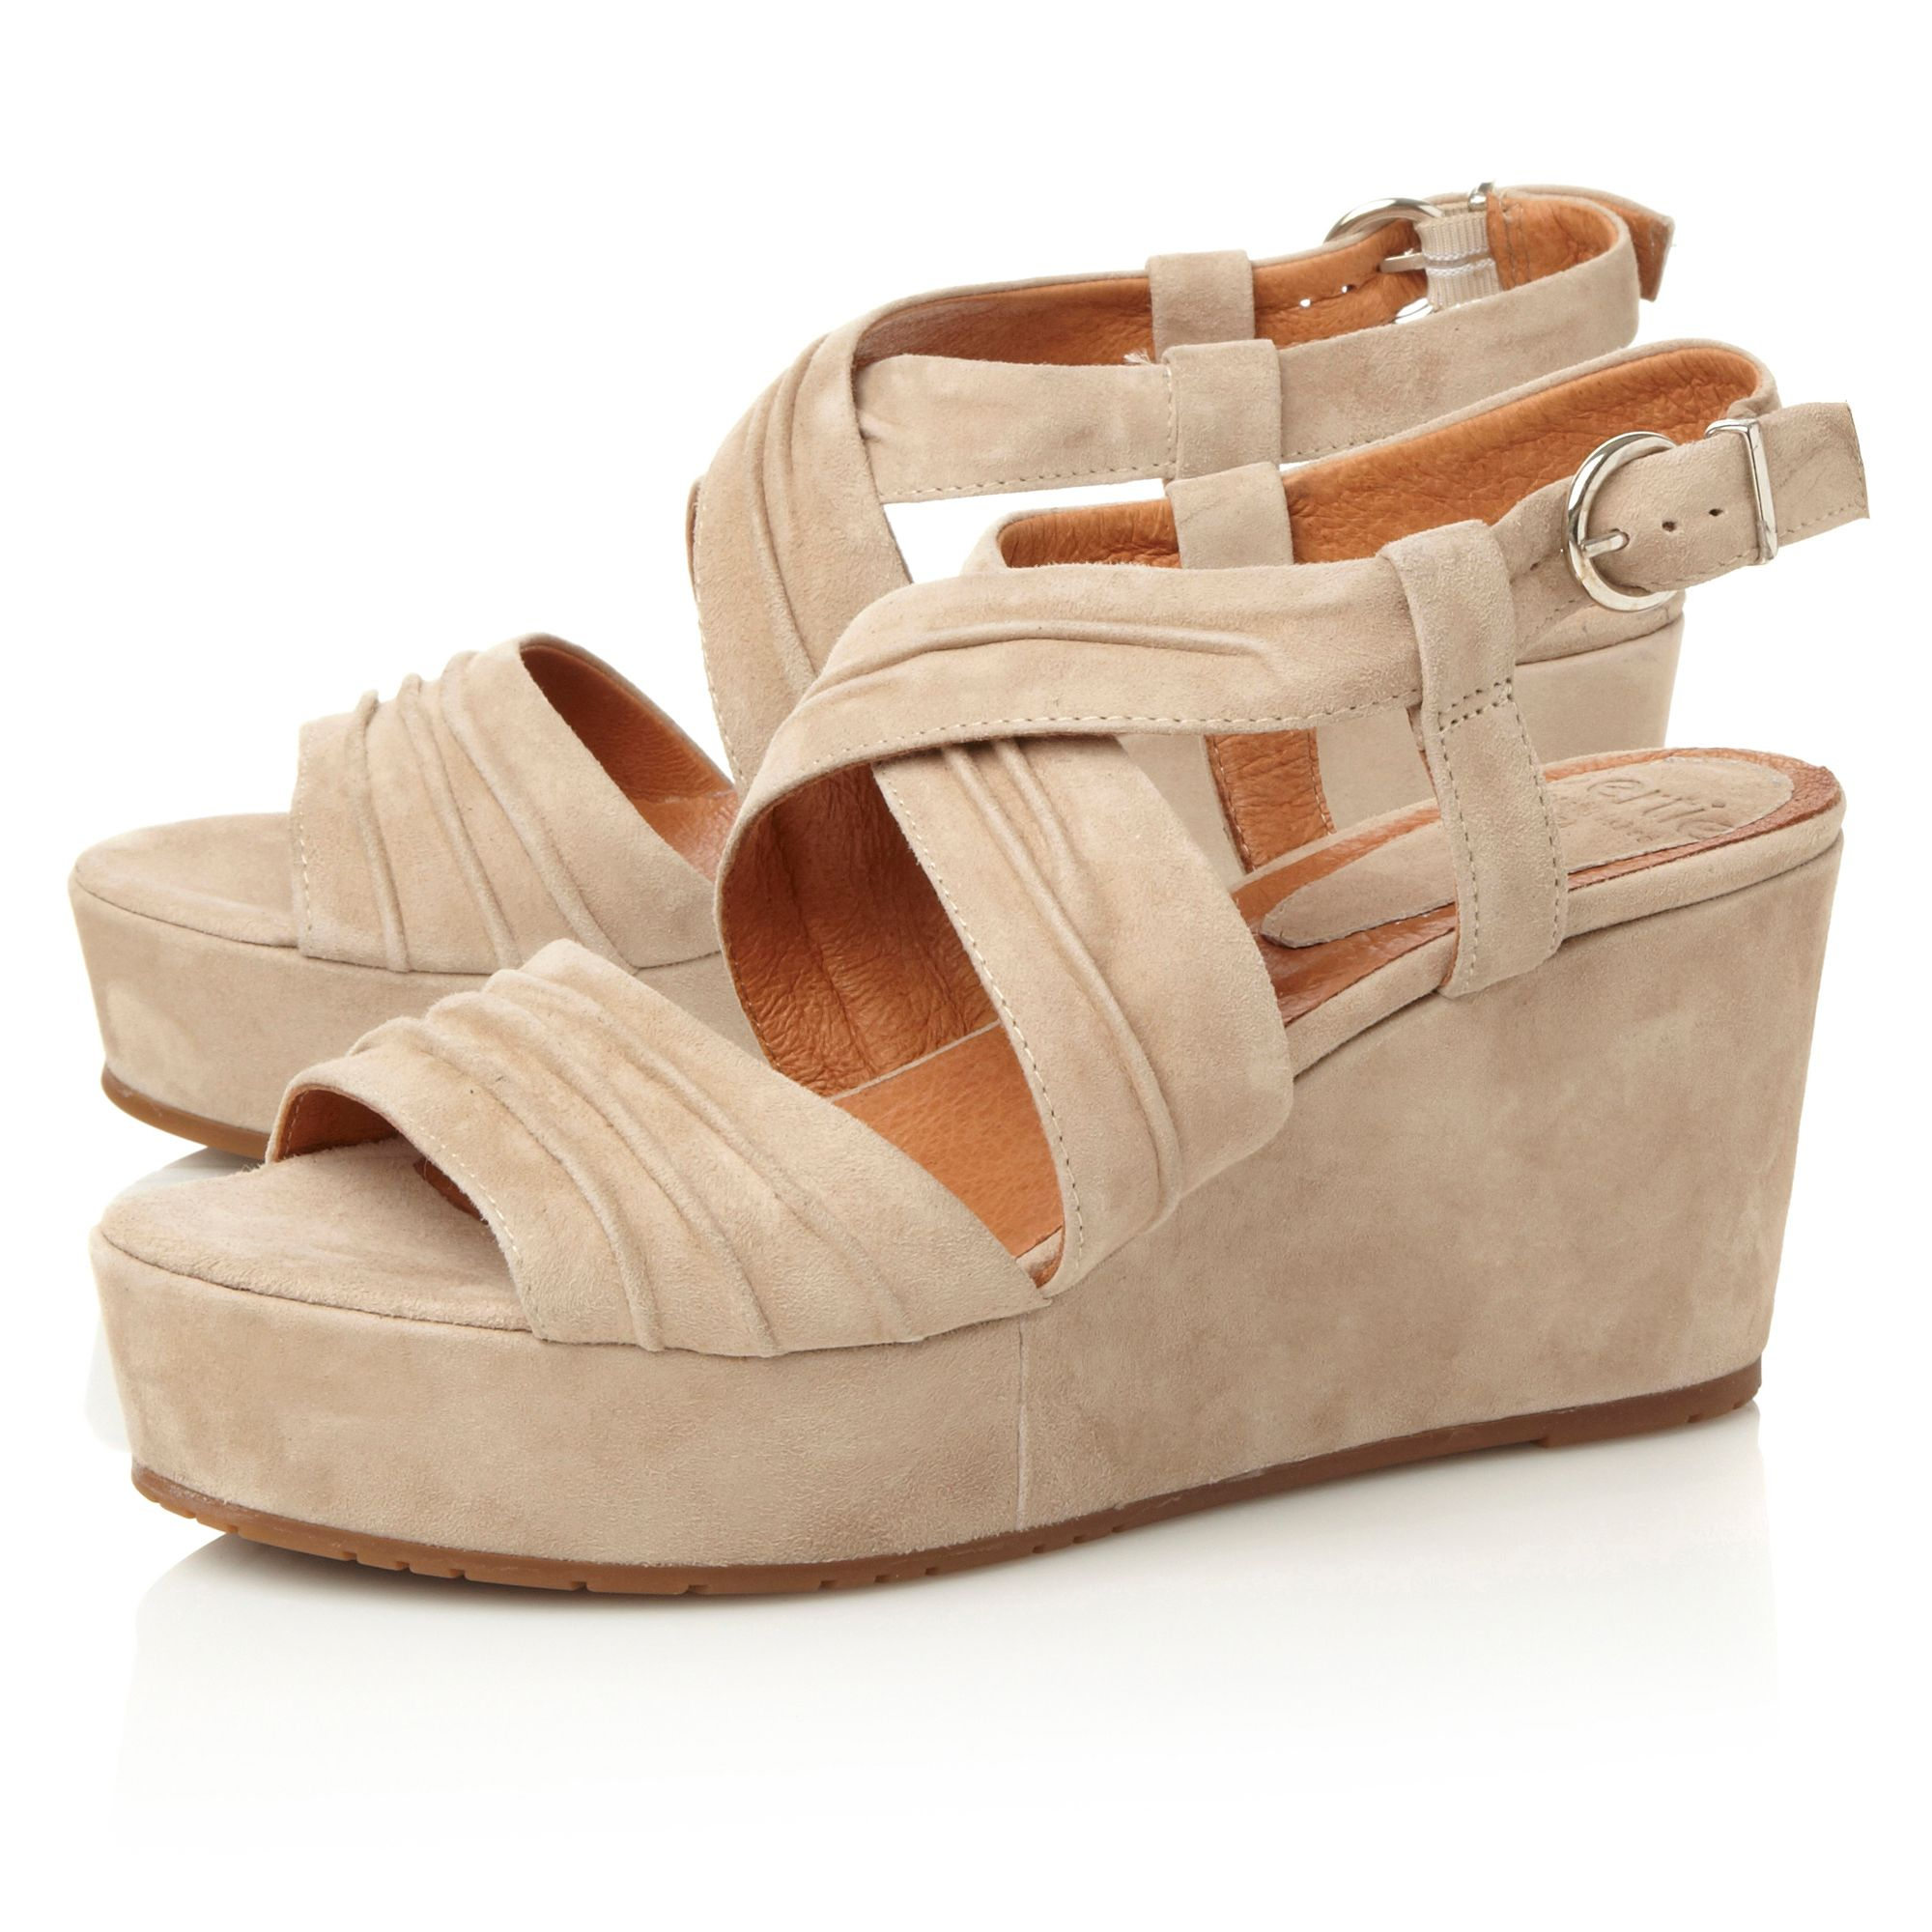 Golder cross strap wedge shoes